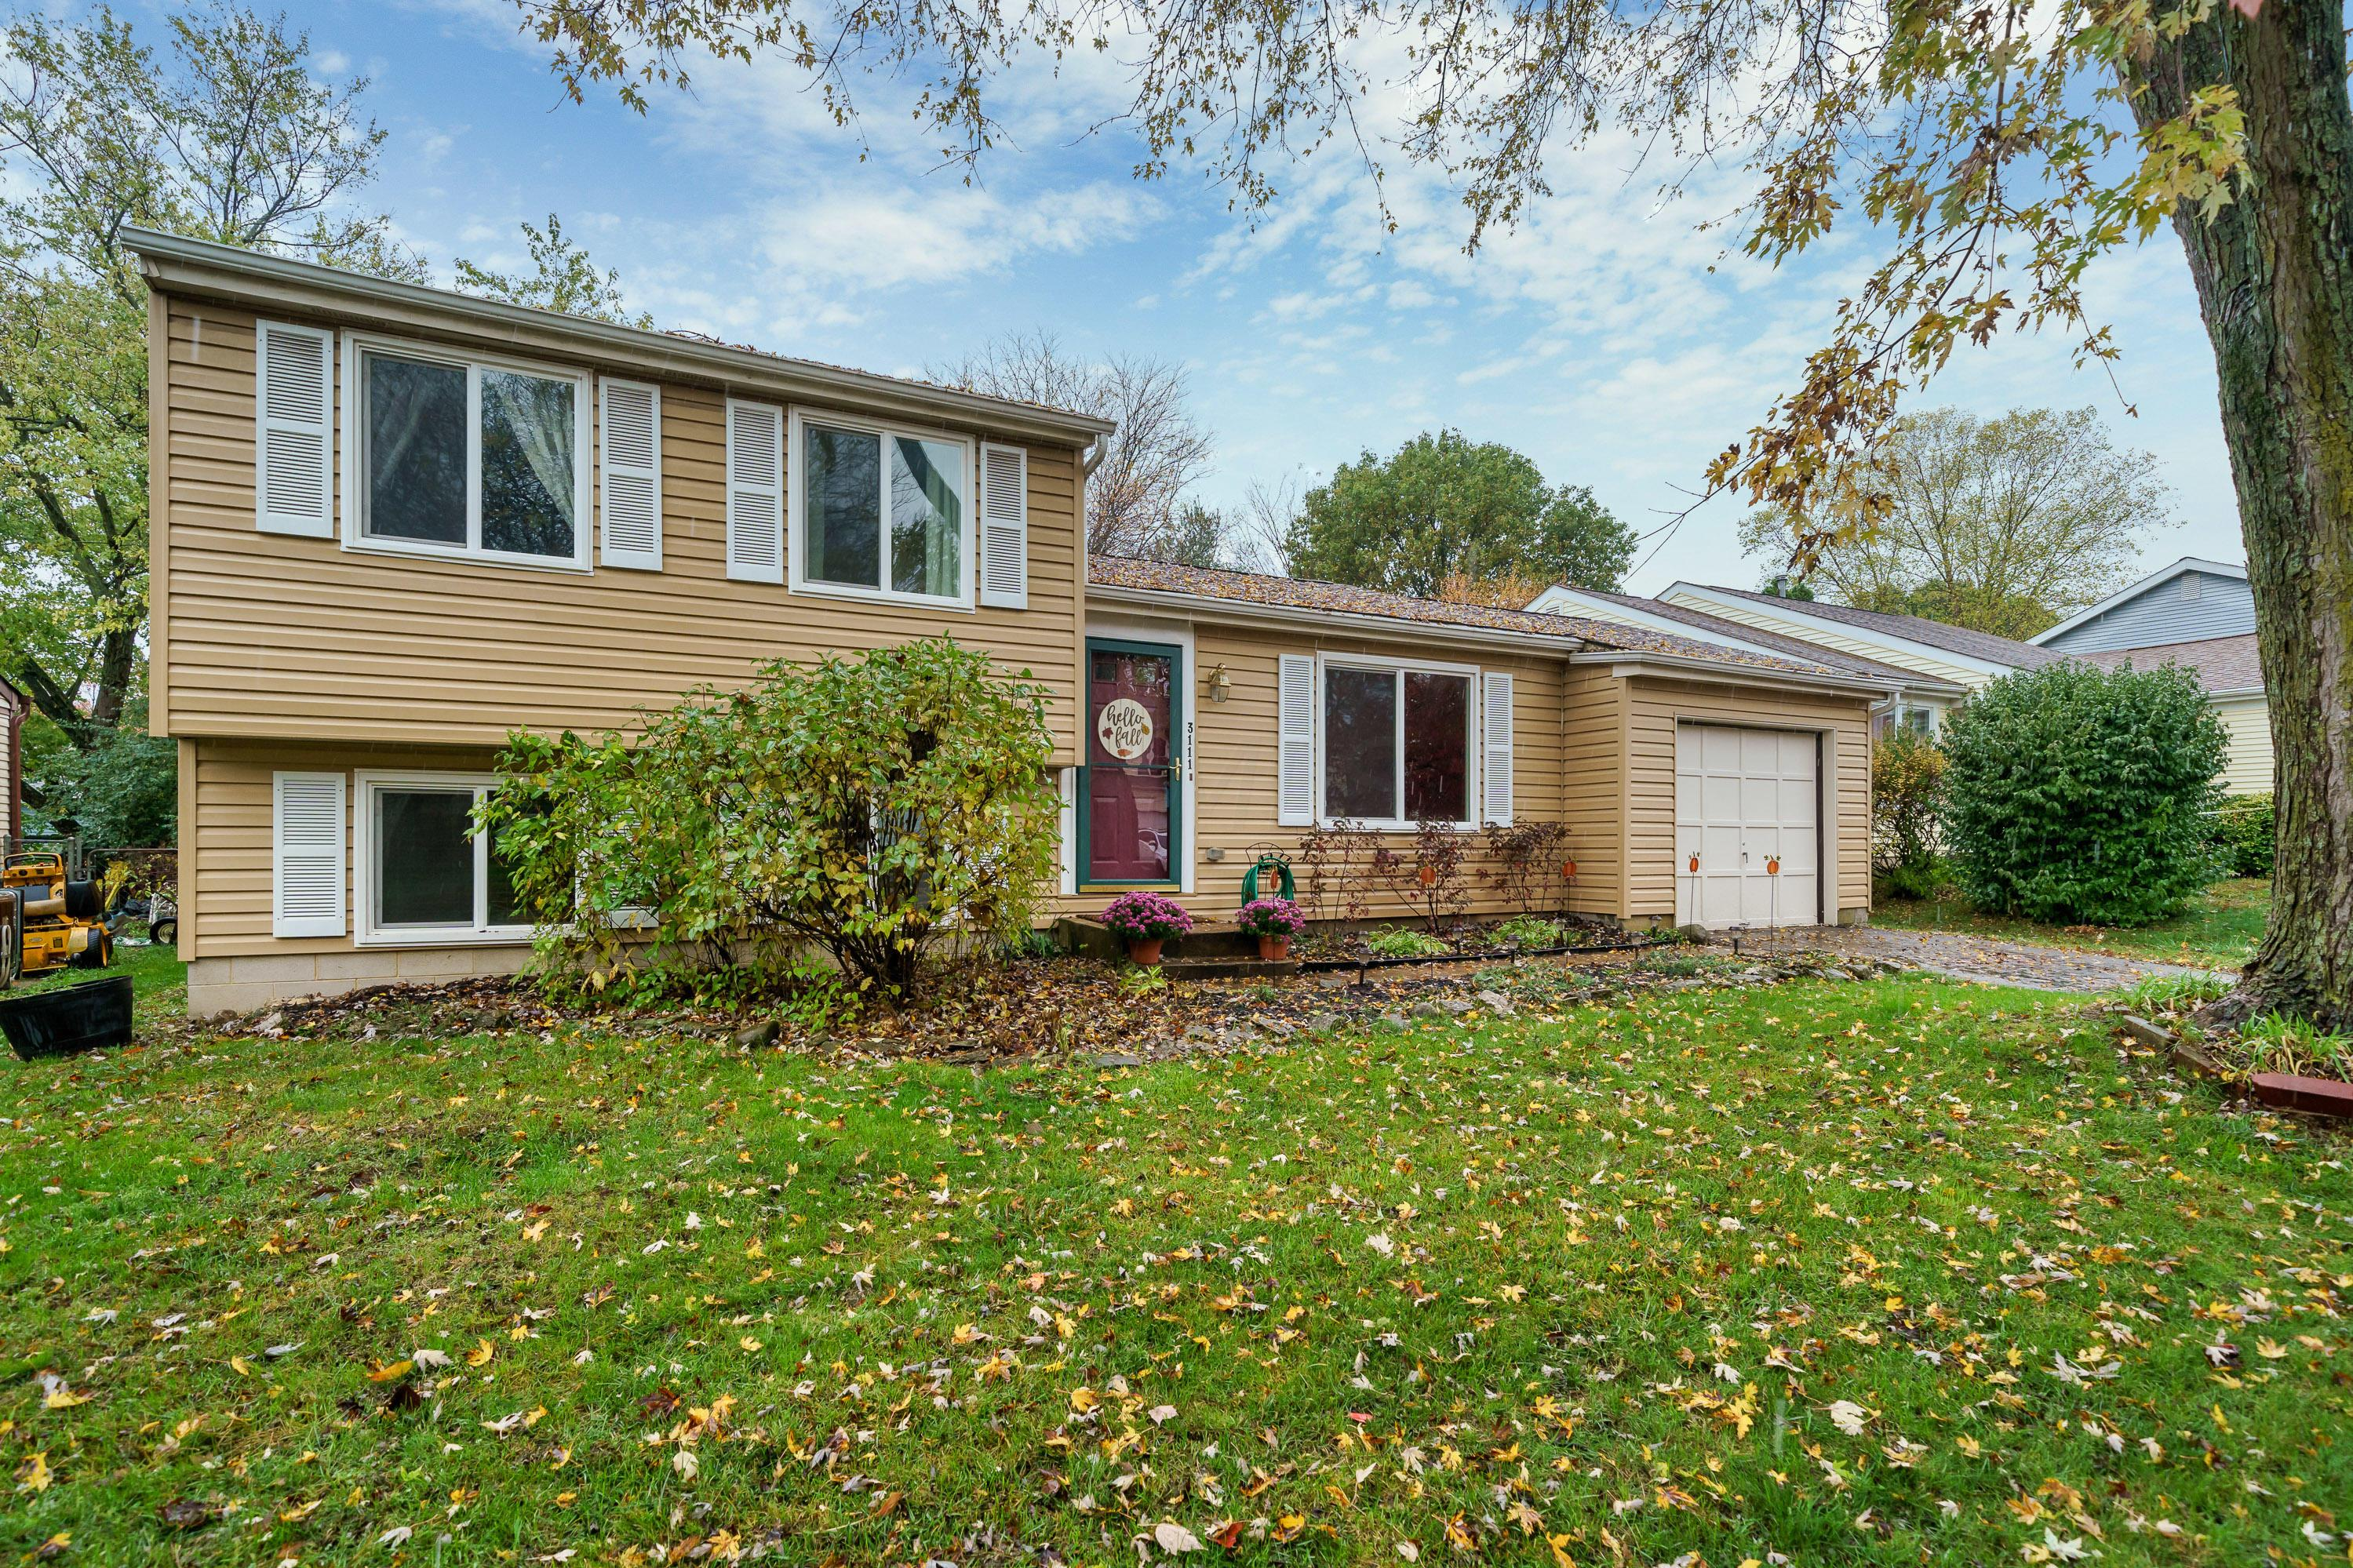 3111 Strathaven Court, Dublin, Ohio 43017, 3 Bedrooms Bedrooms, ,2 BathroomsBathrooms,Residential,For Sale,Strathaven,220038479